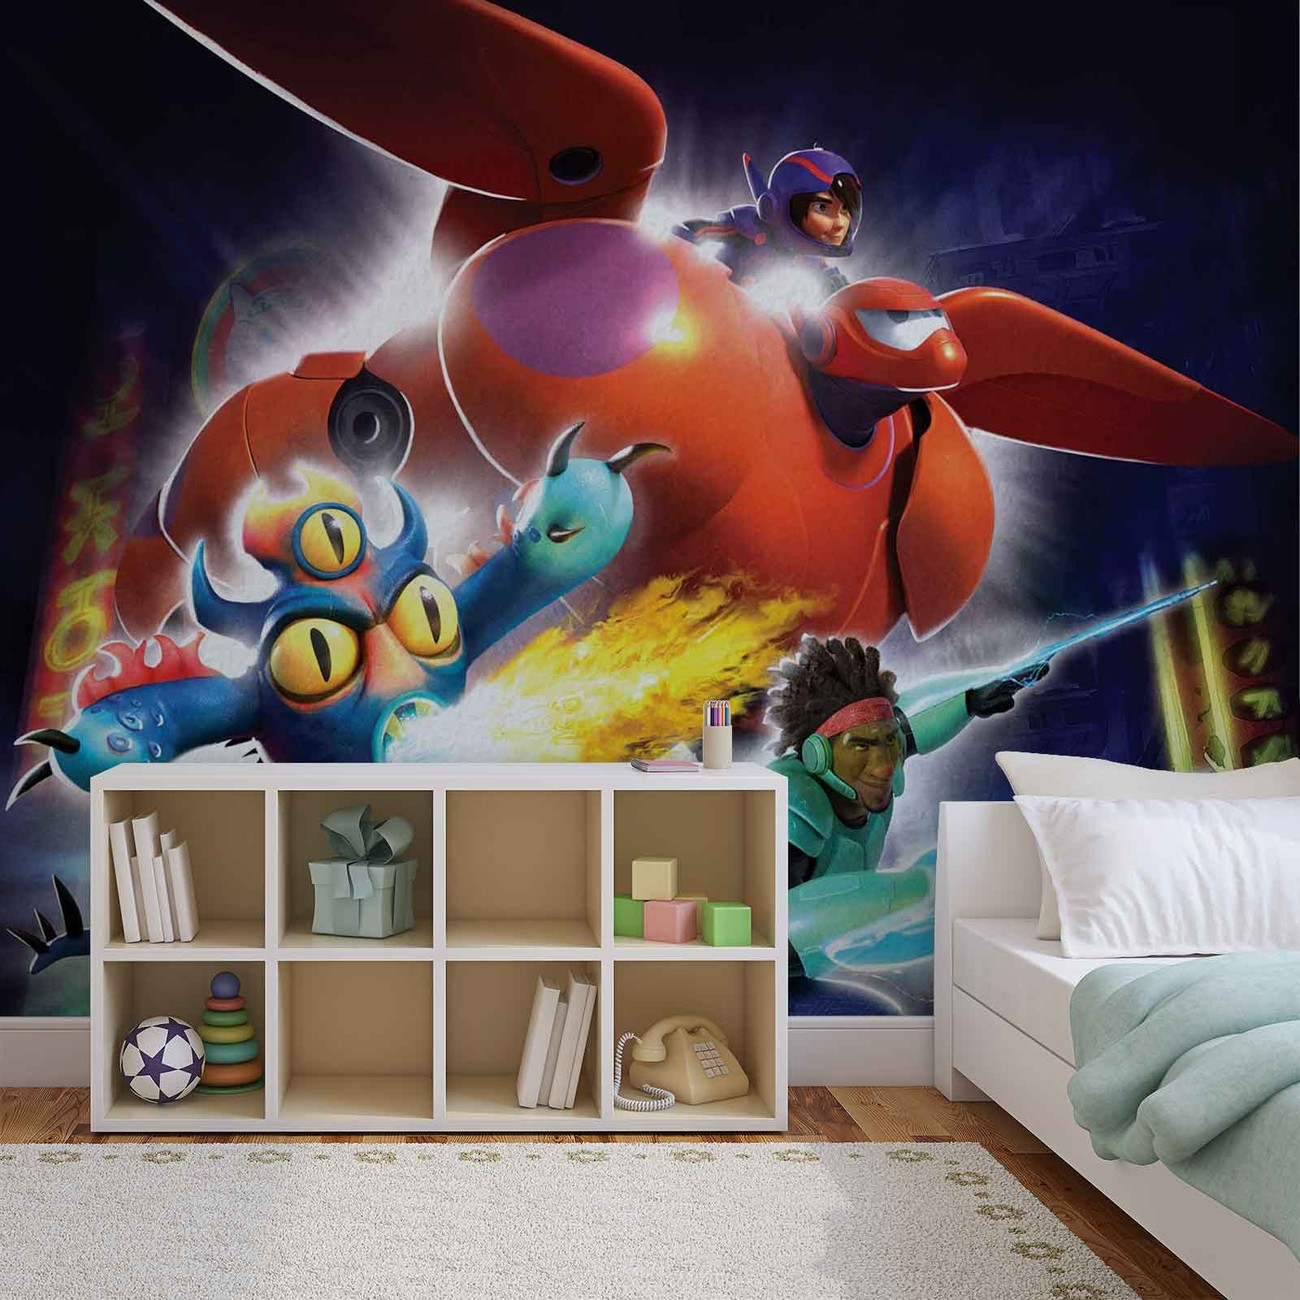 Disney big hero 6 wall paper mural buy at europosters for Disney wall mural